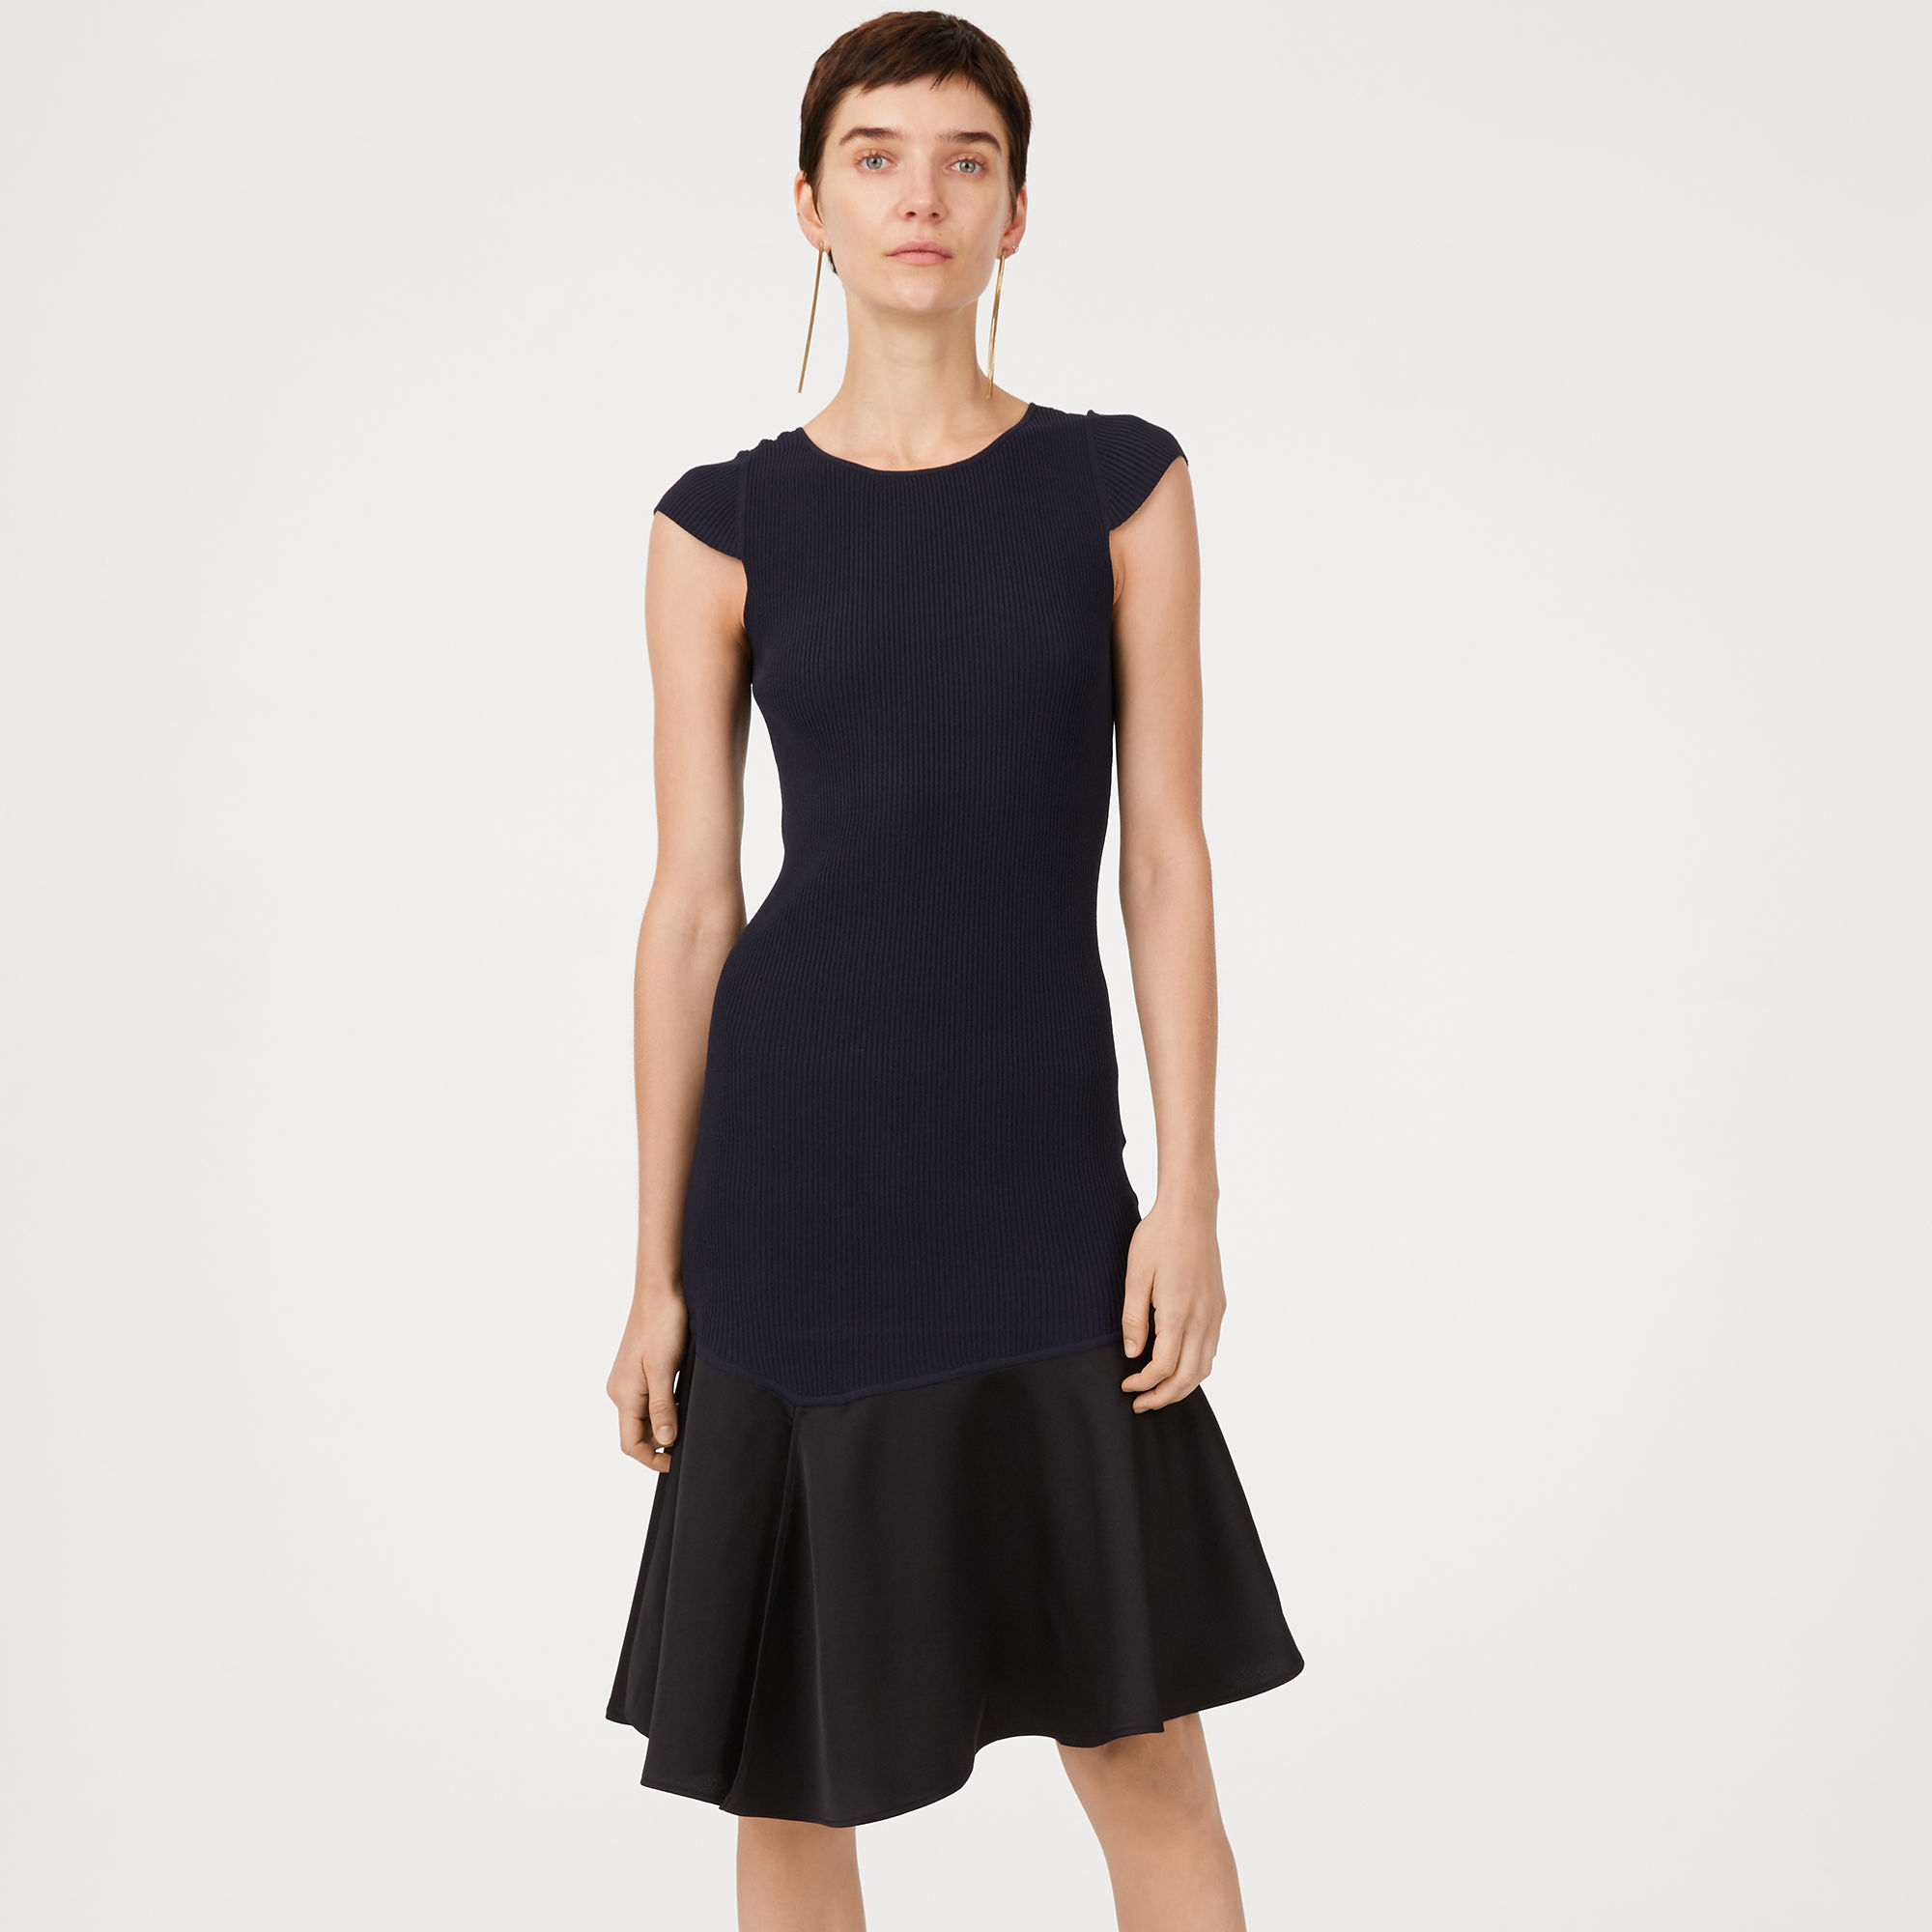 Club Monaco Sale: Okono Sweater Dress